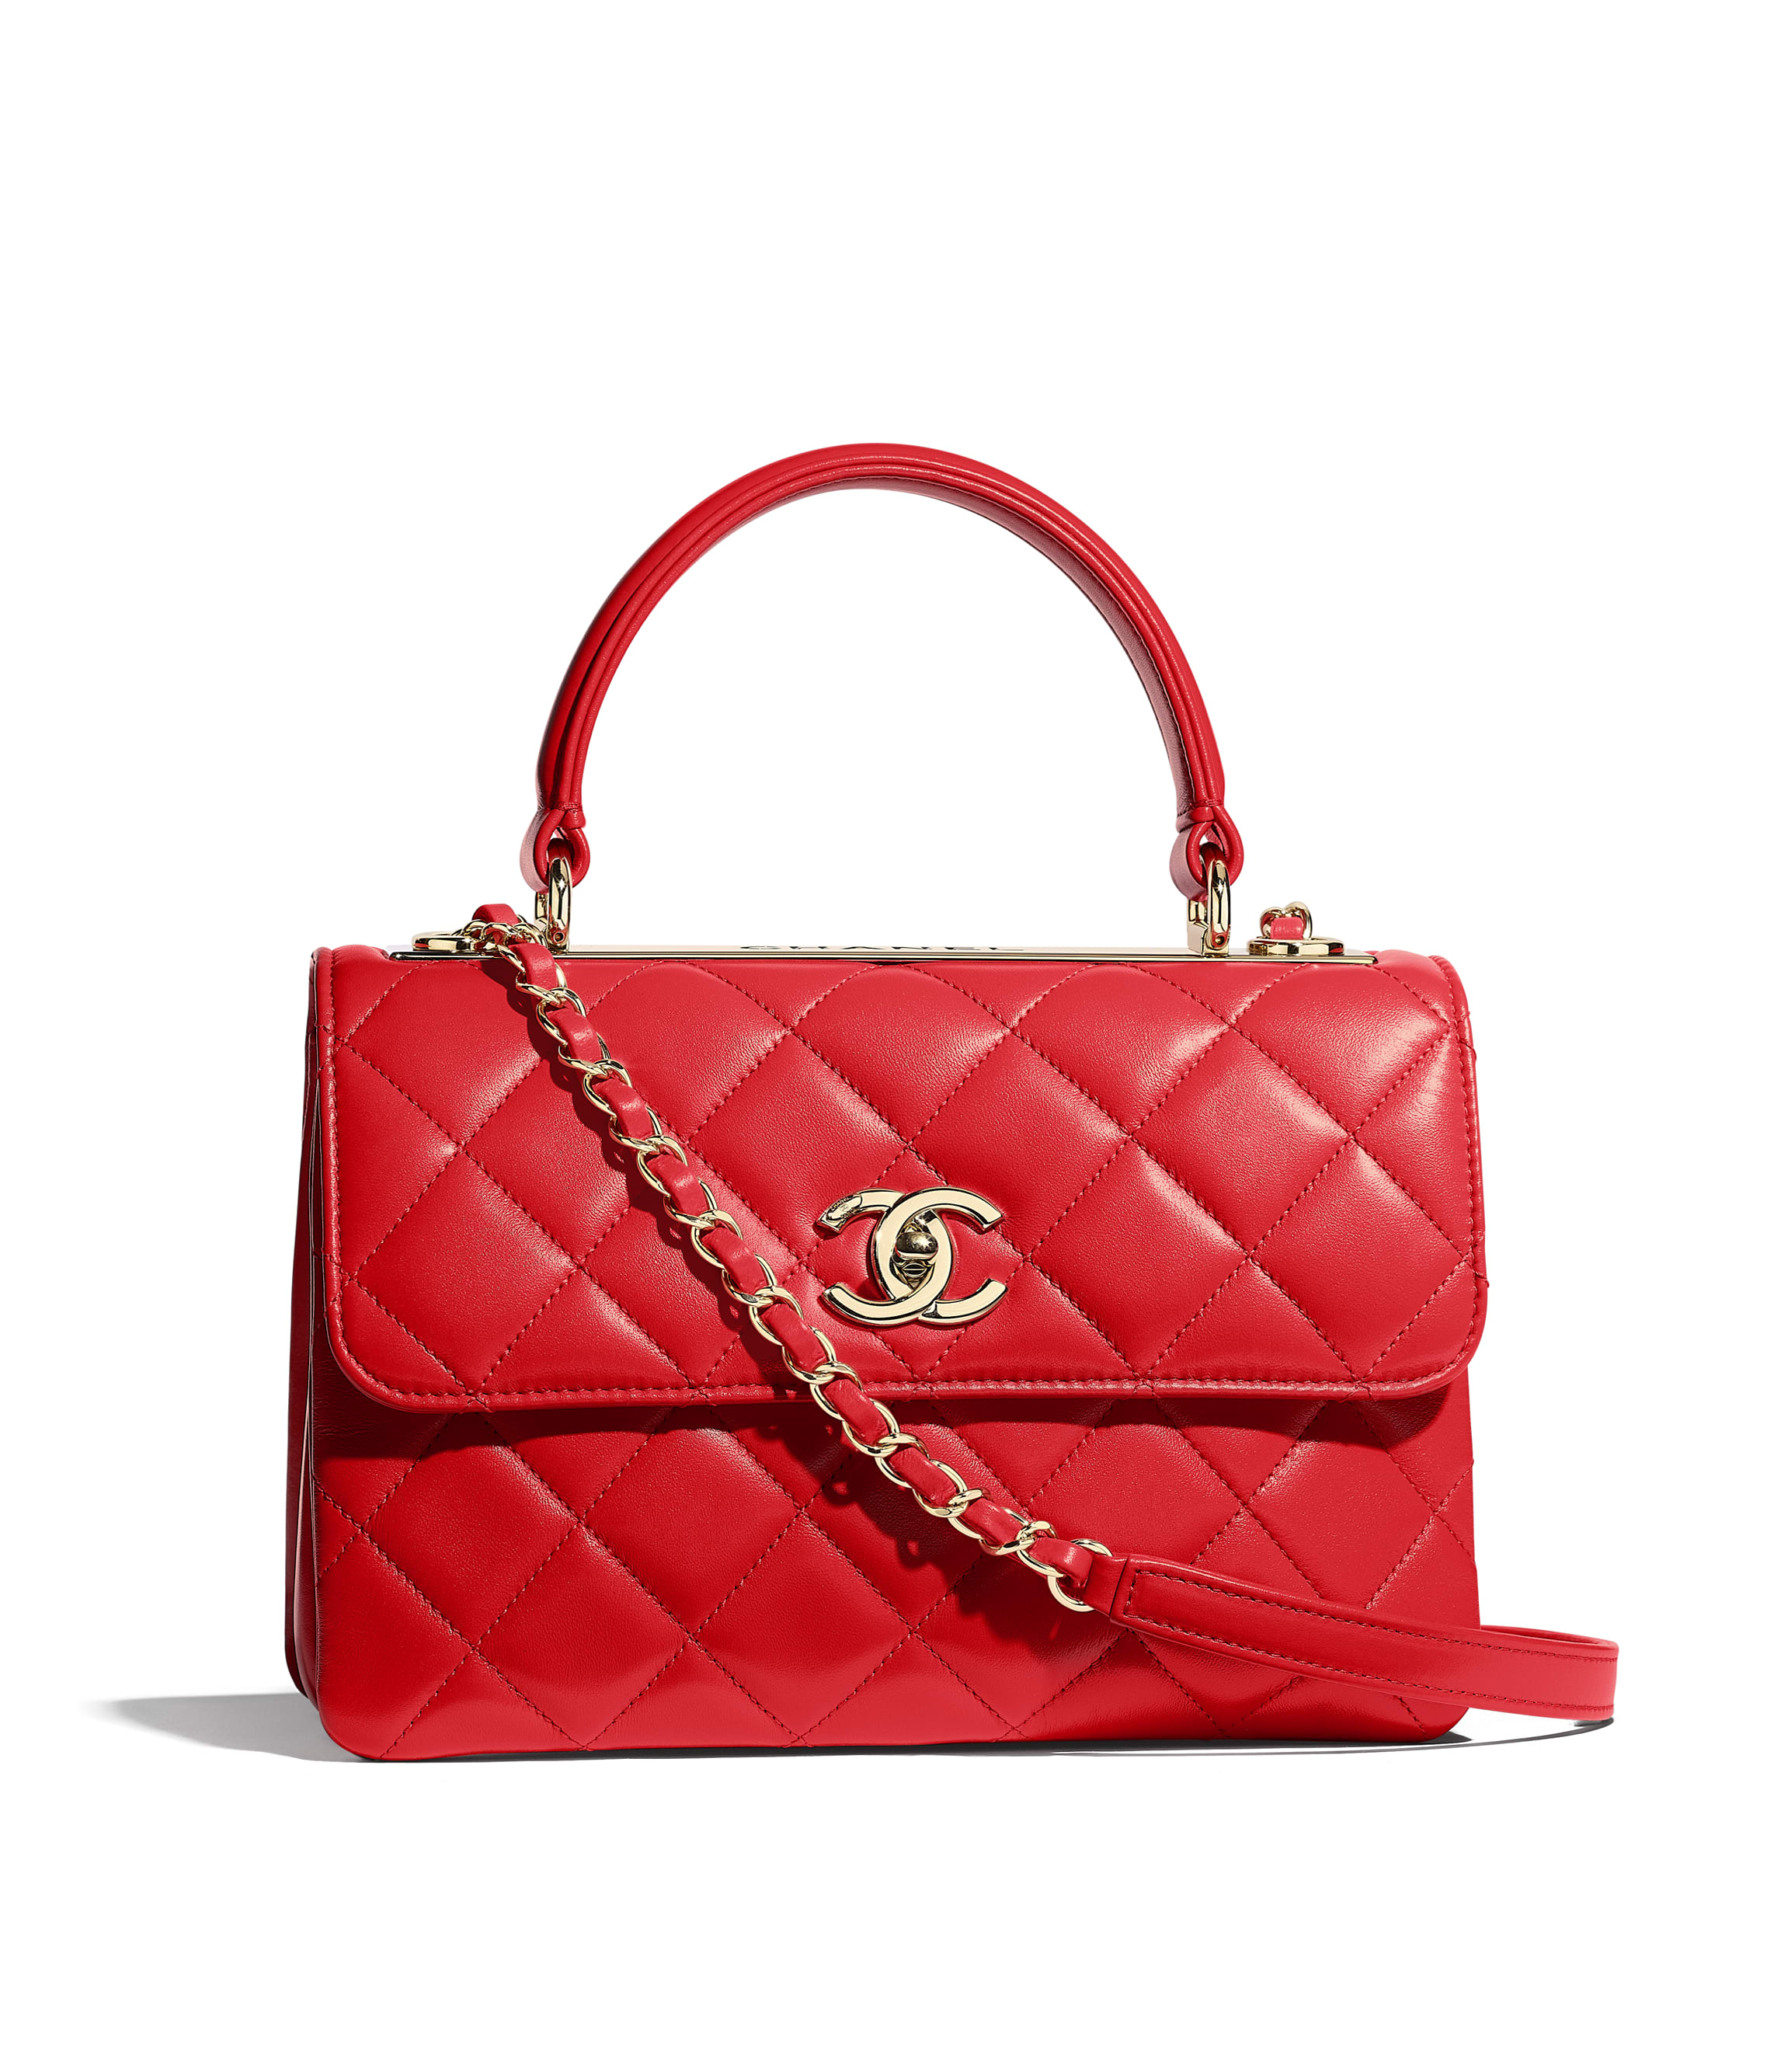 bd3982e547 Small Flap Bag with Top Handle, lambskin & gold-tone metal, red - CHANEL